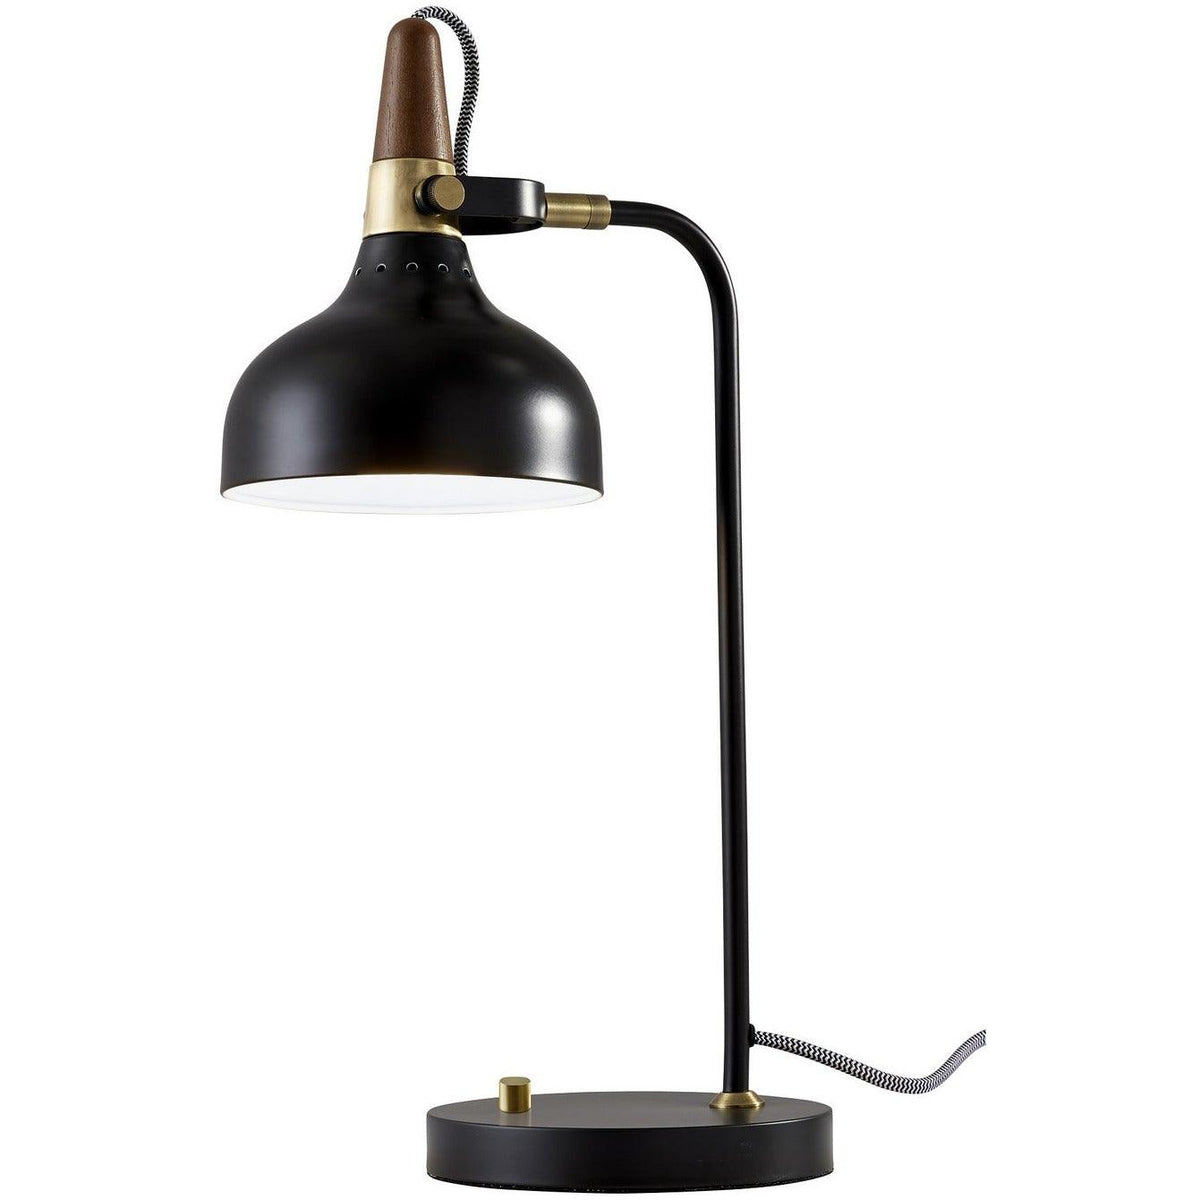 Adesso Home - 3535-01 - One Light Table Lamp - Brunswick - Black, Antique Brass/Walnut Rubberwood